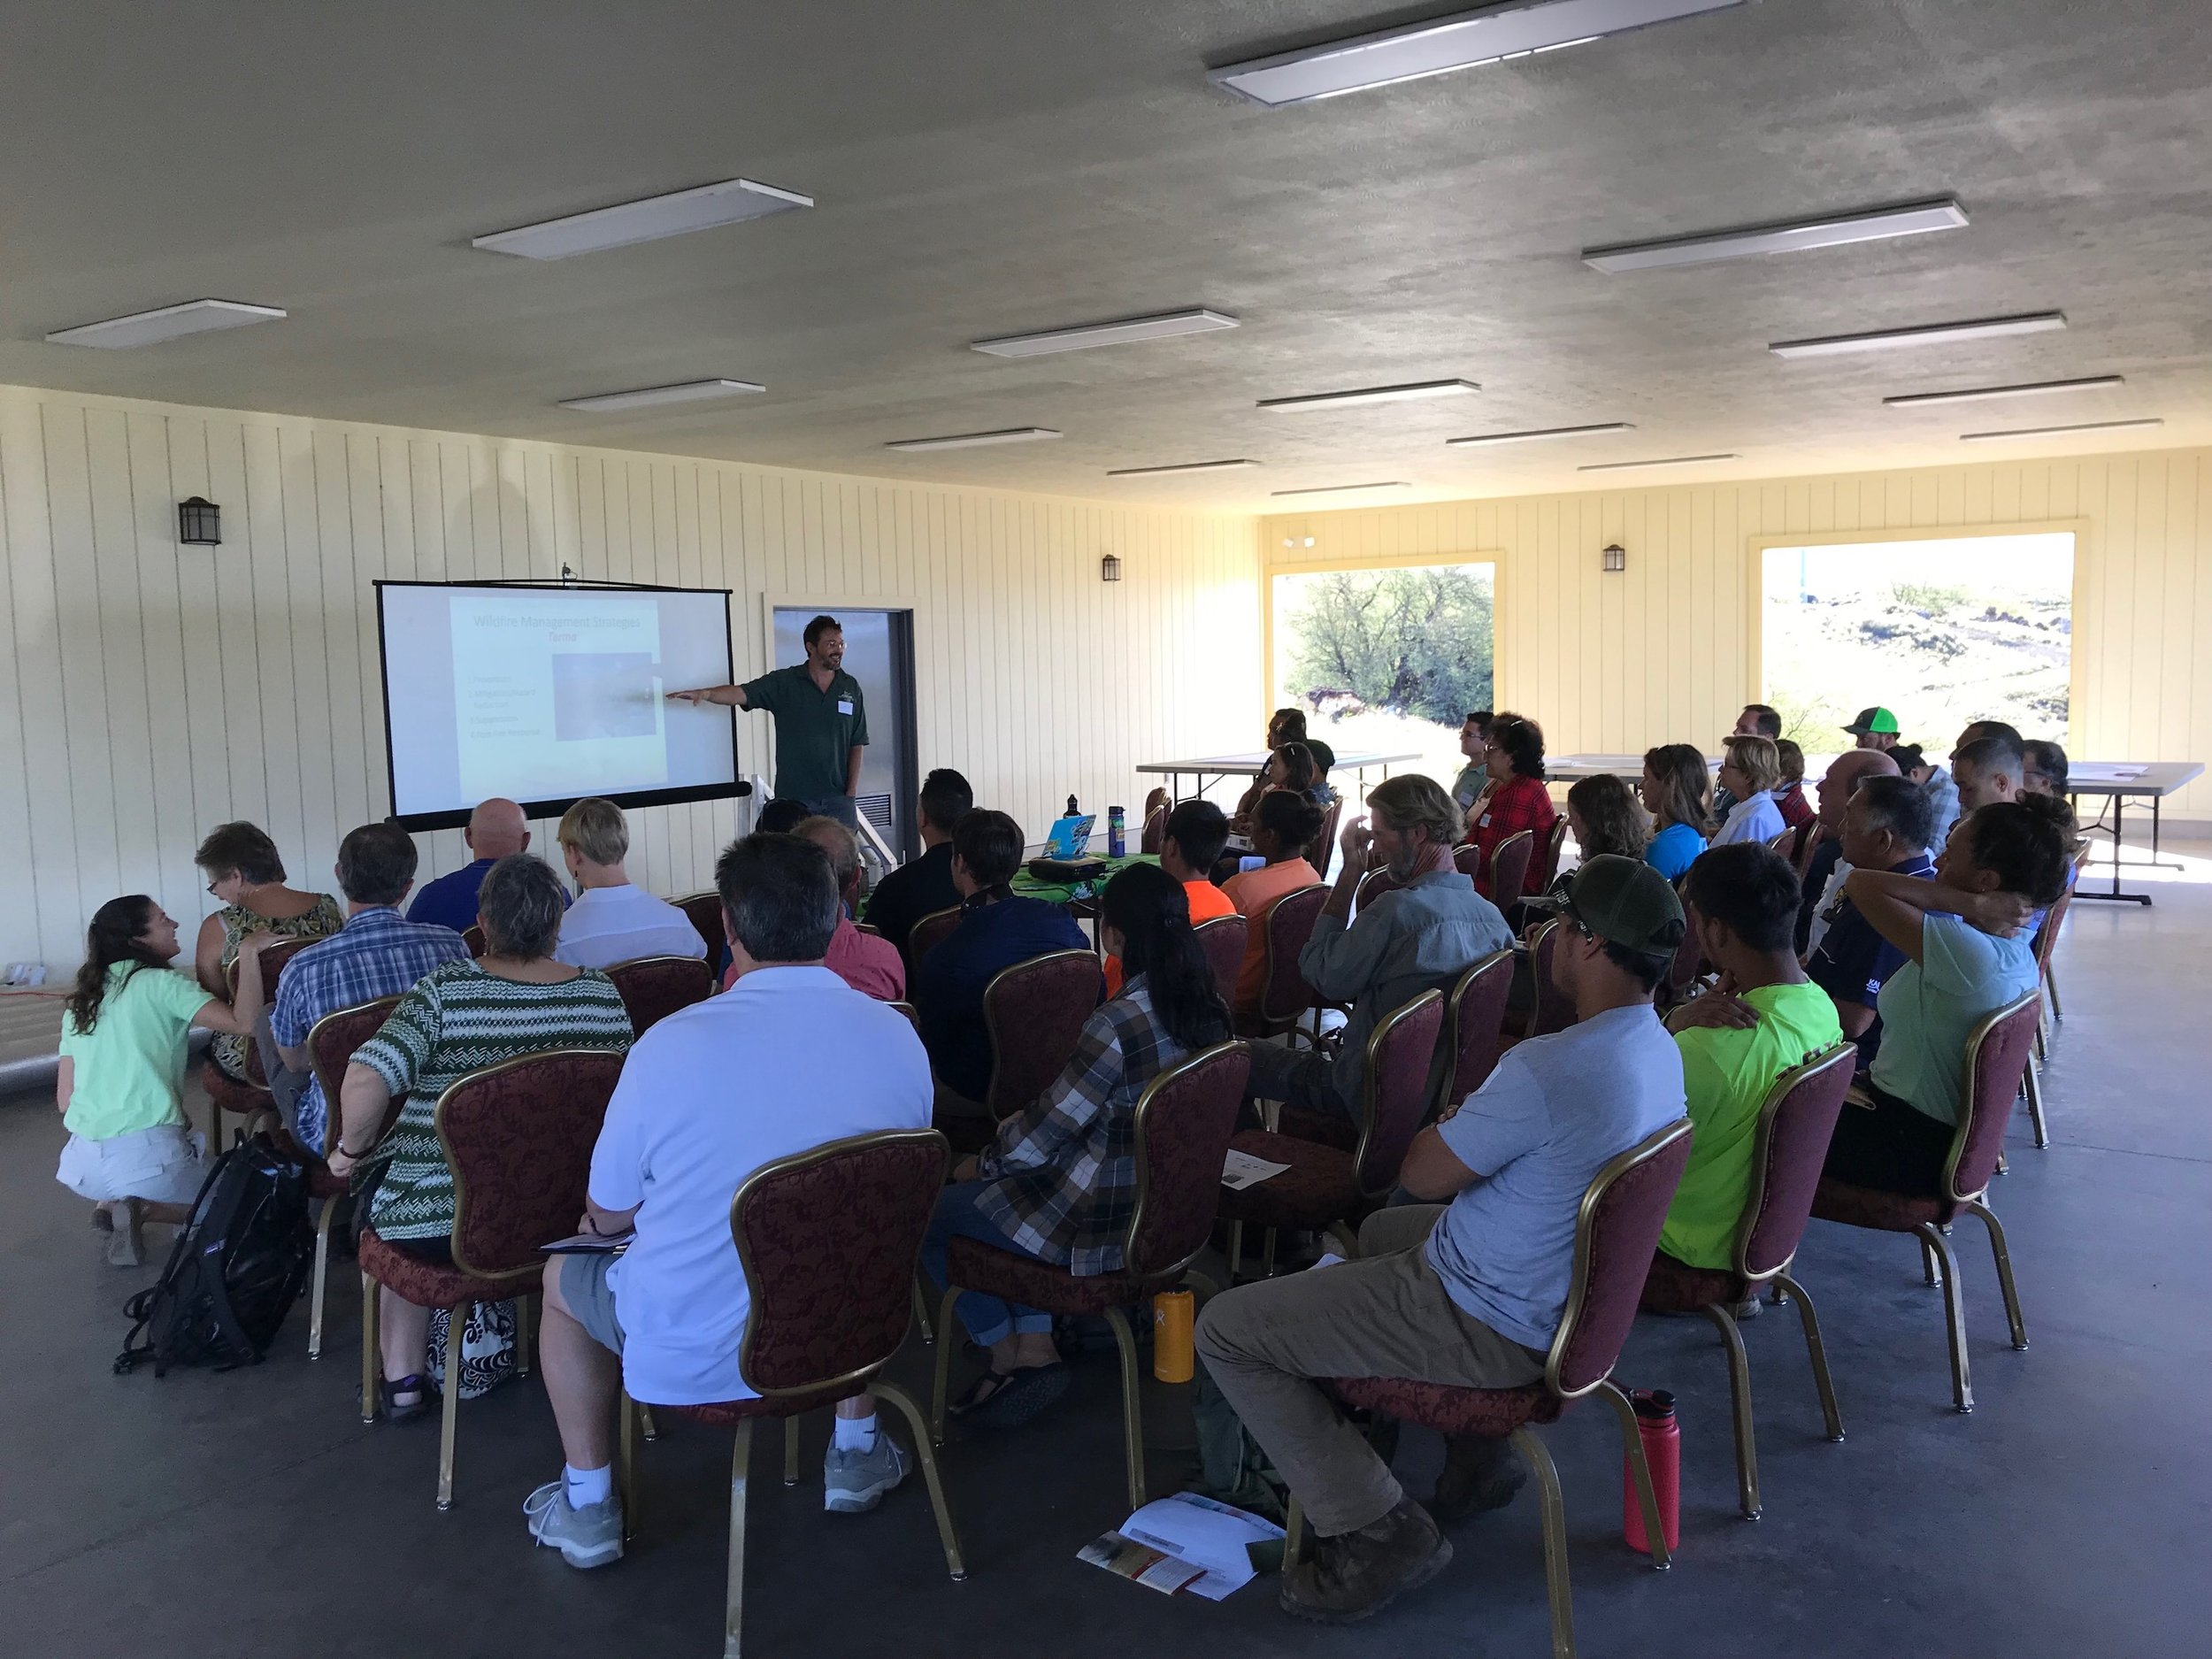 Hawaii Island Kailapa Vegetative Fuels Management Collaborative Action Planning Workshop_2_26_2019_21.jpg